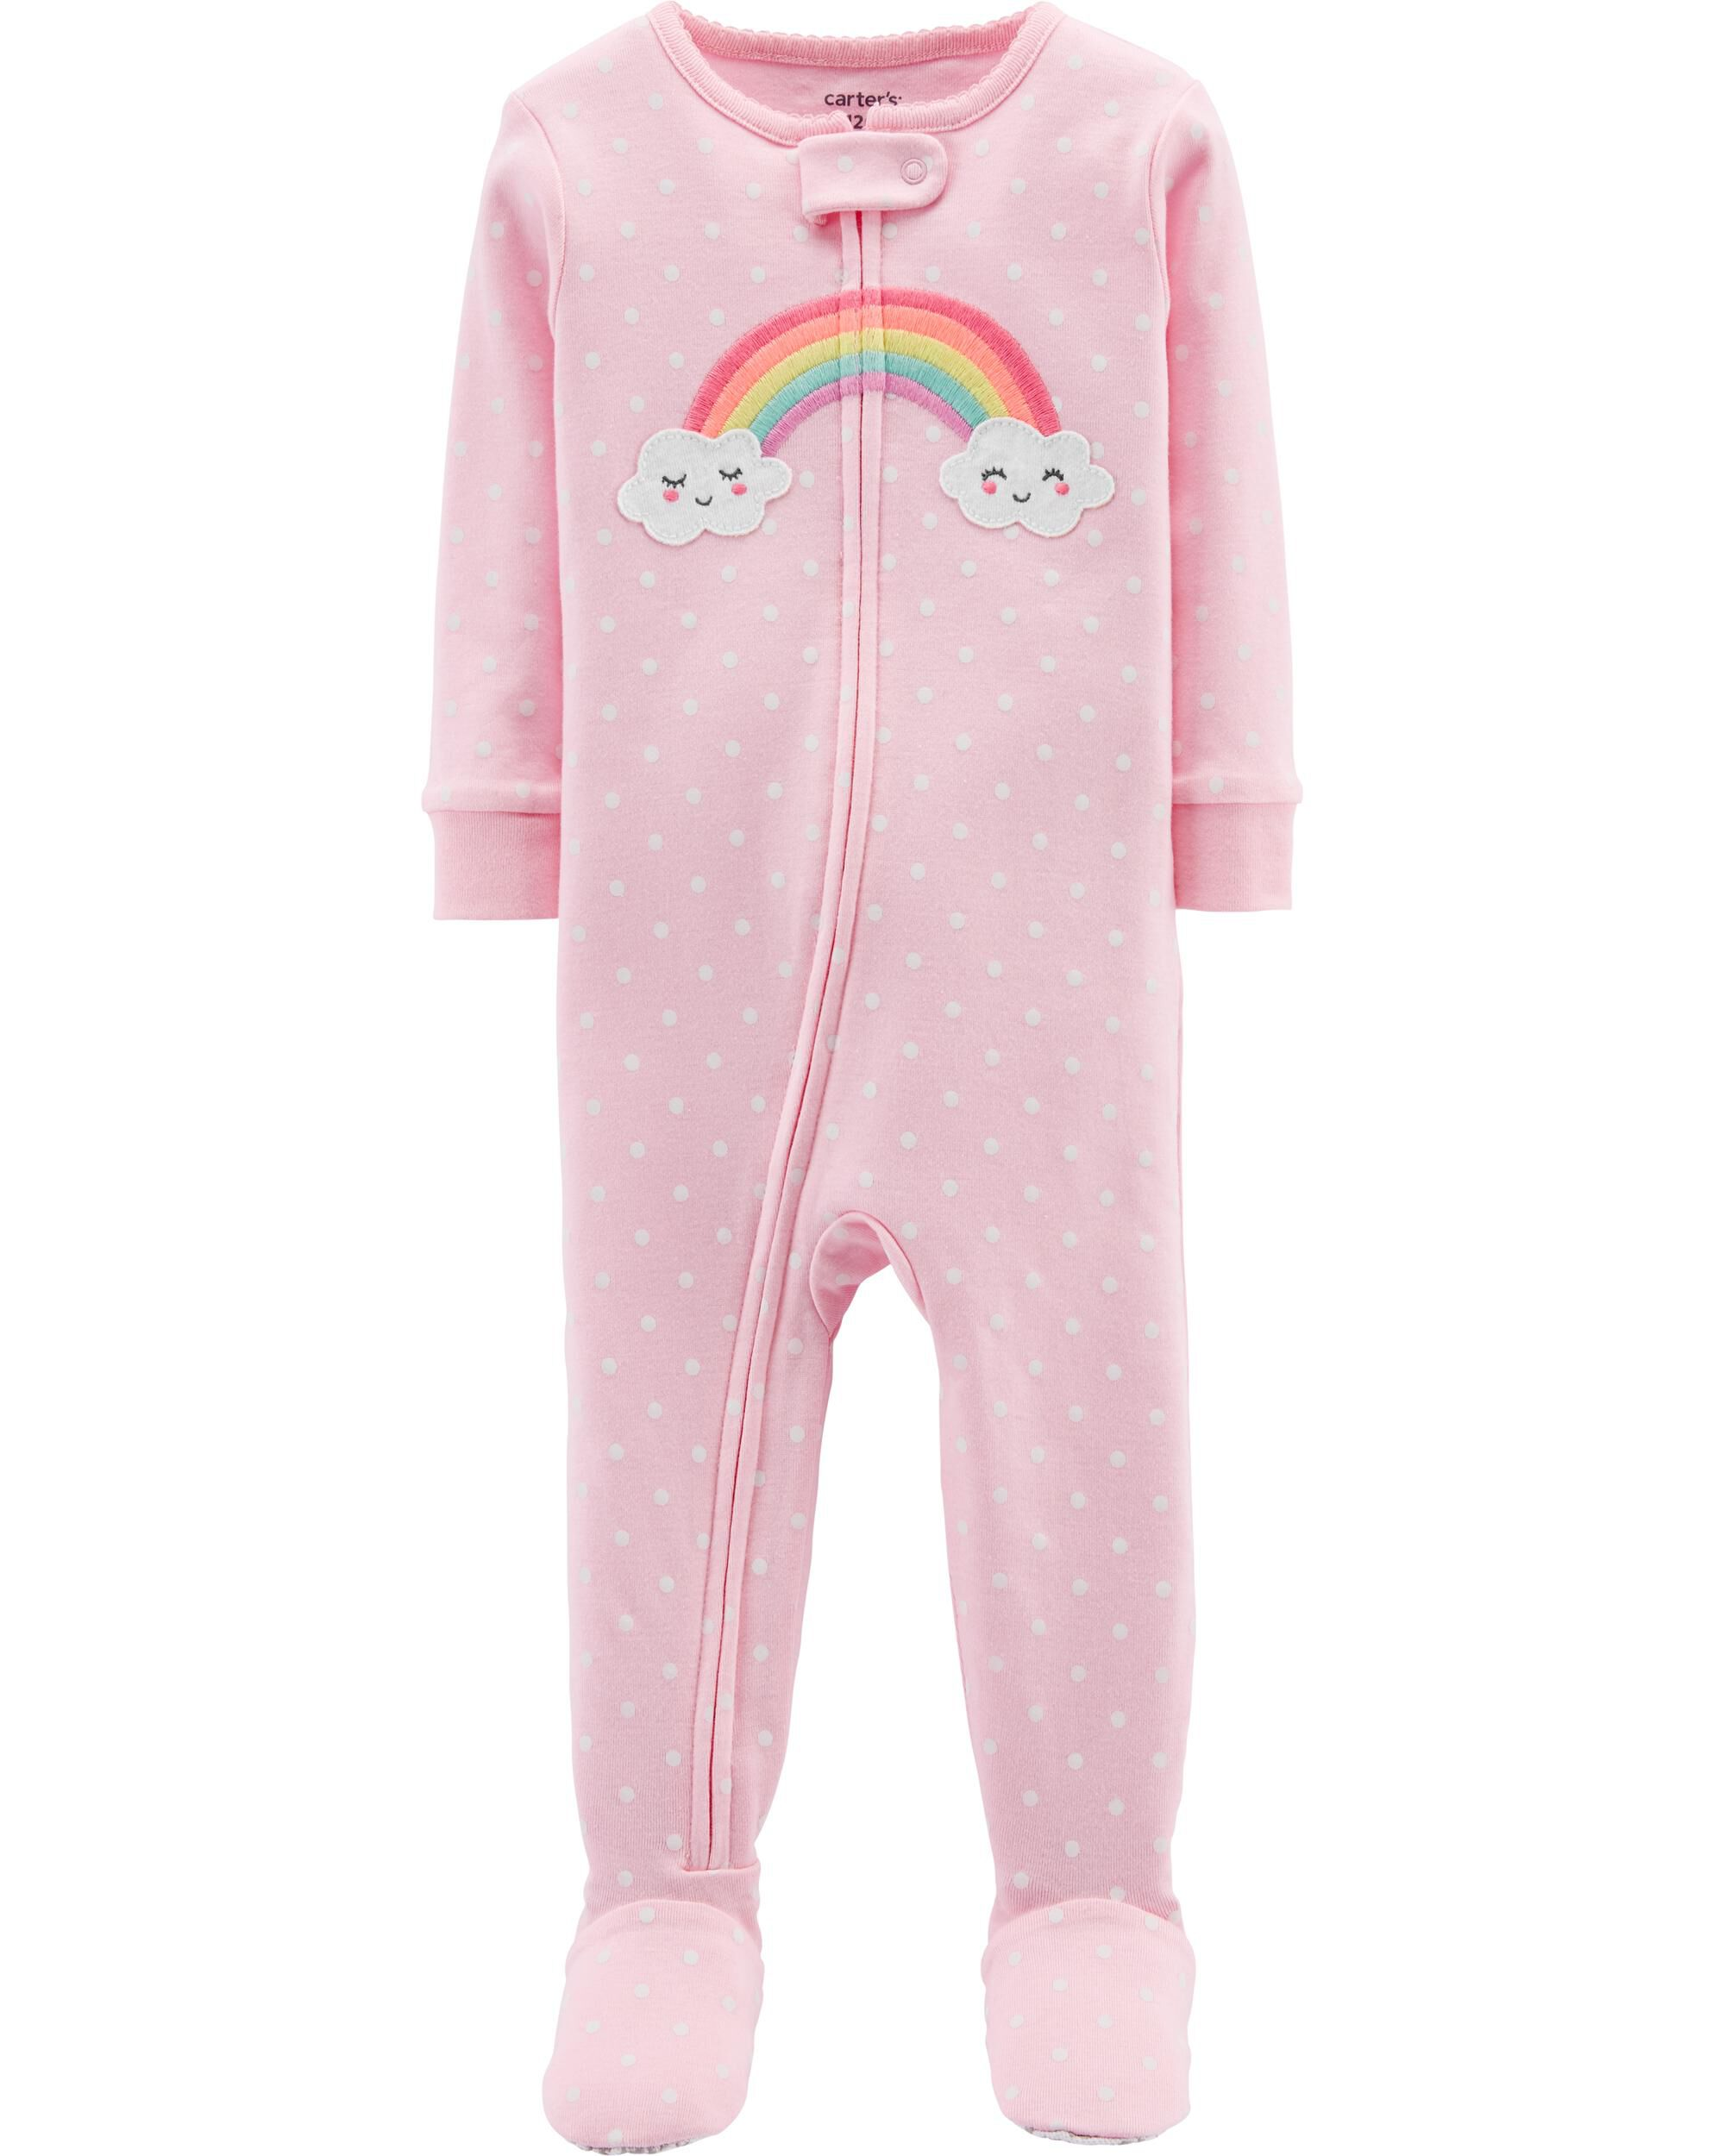 Sleepwear Child Of Mine Carter's Pink Unicorn Princess Pajamas 18 Months